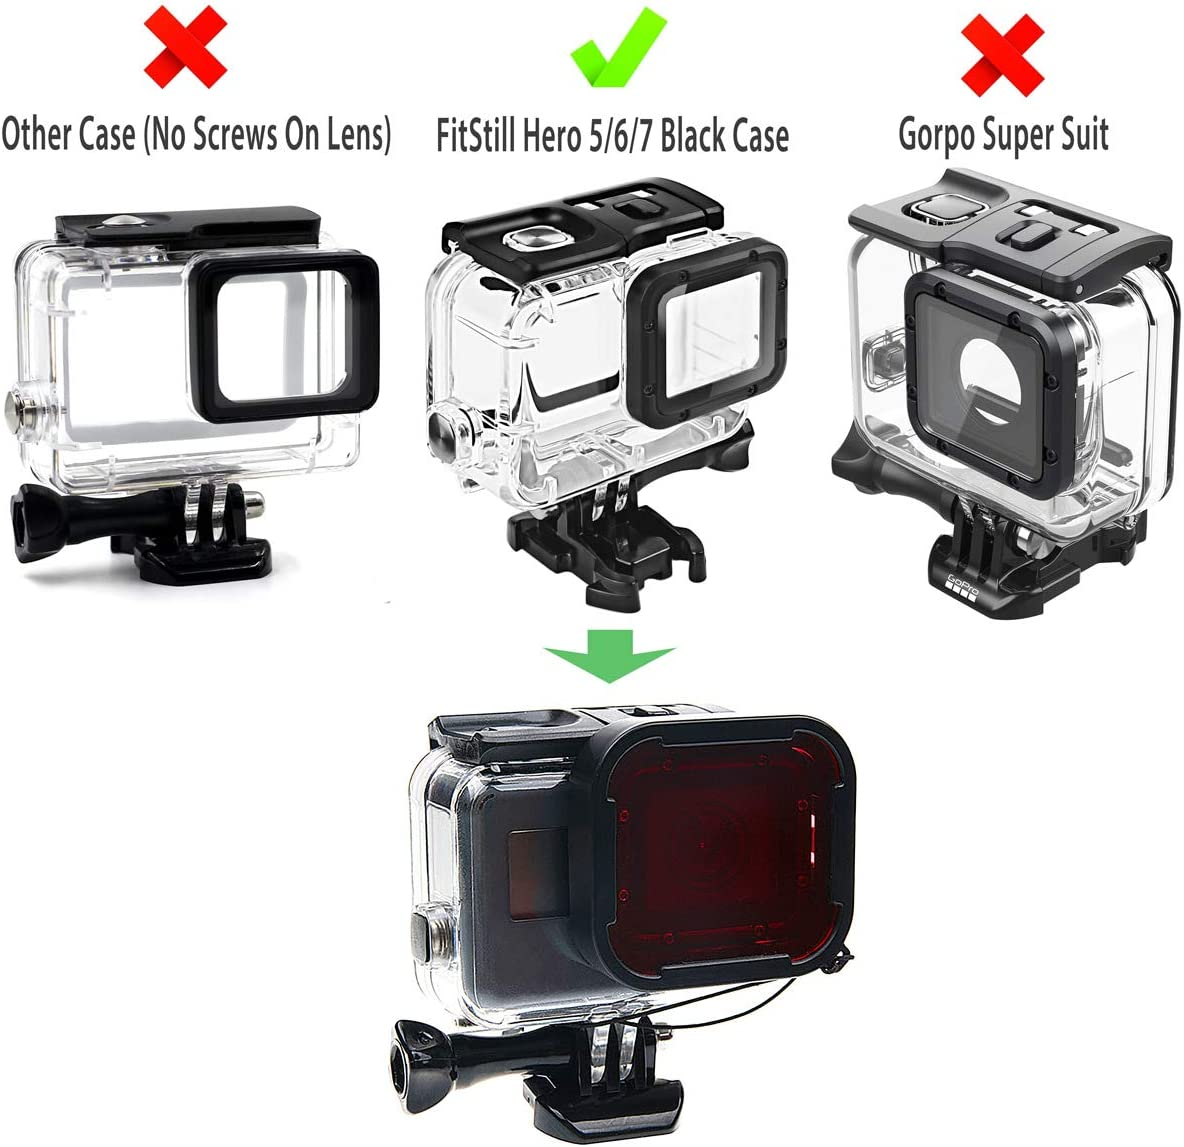 Red Magenta Filter FitStill 2-Pack Dive Filter for FitStill Waterproof Housing Enhances Colors for Various Underwater Video and Photography